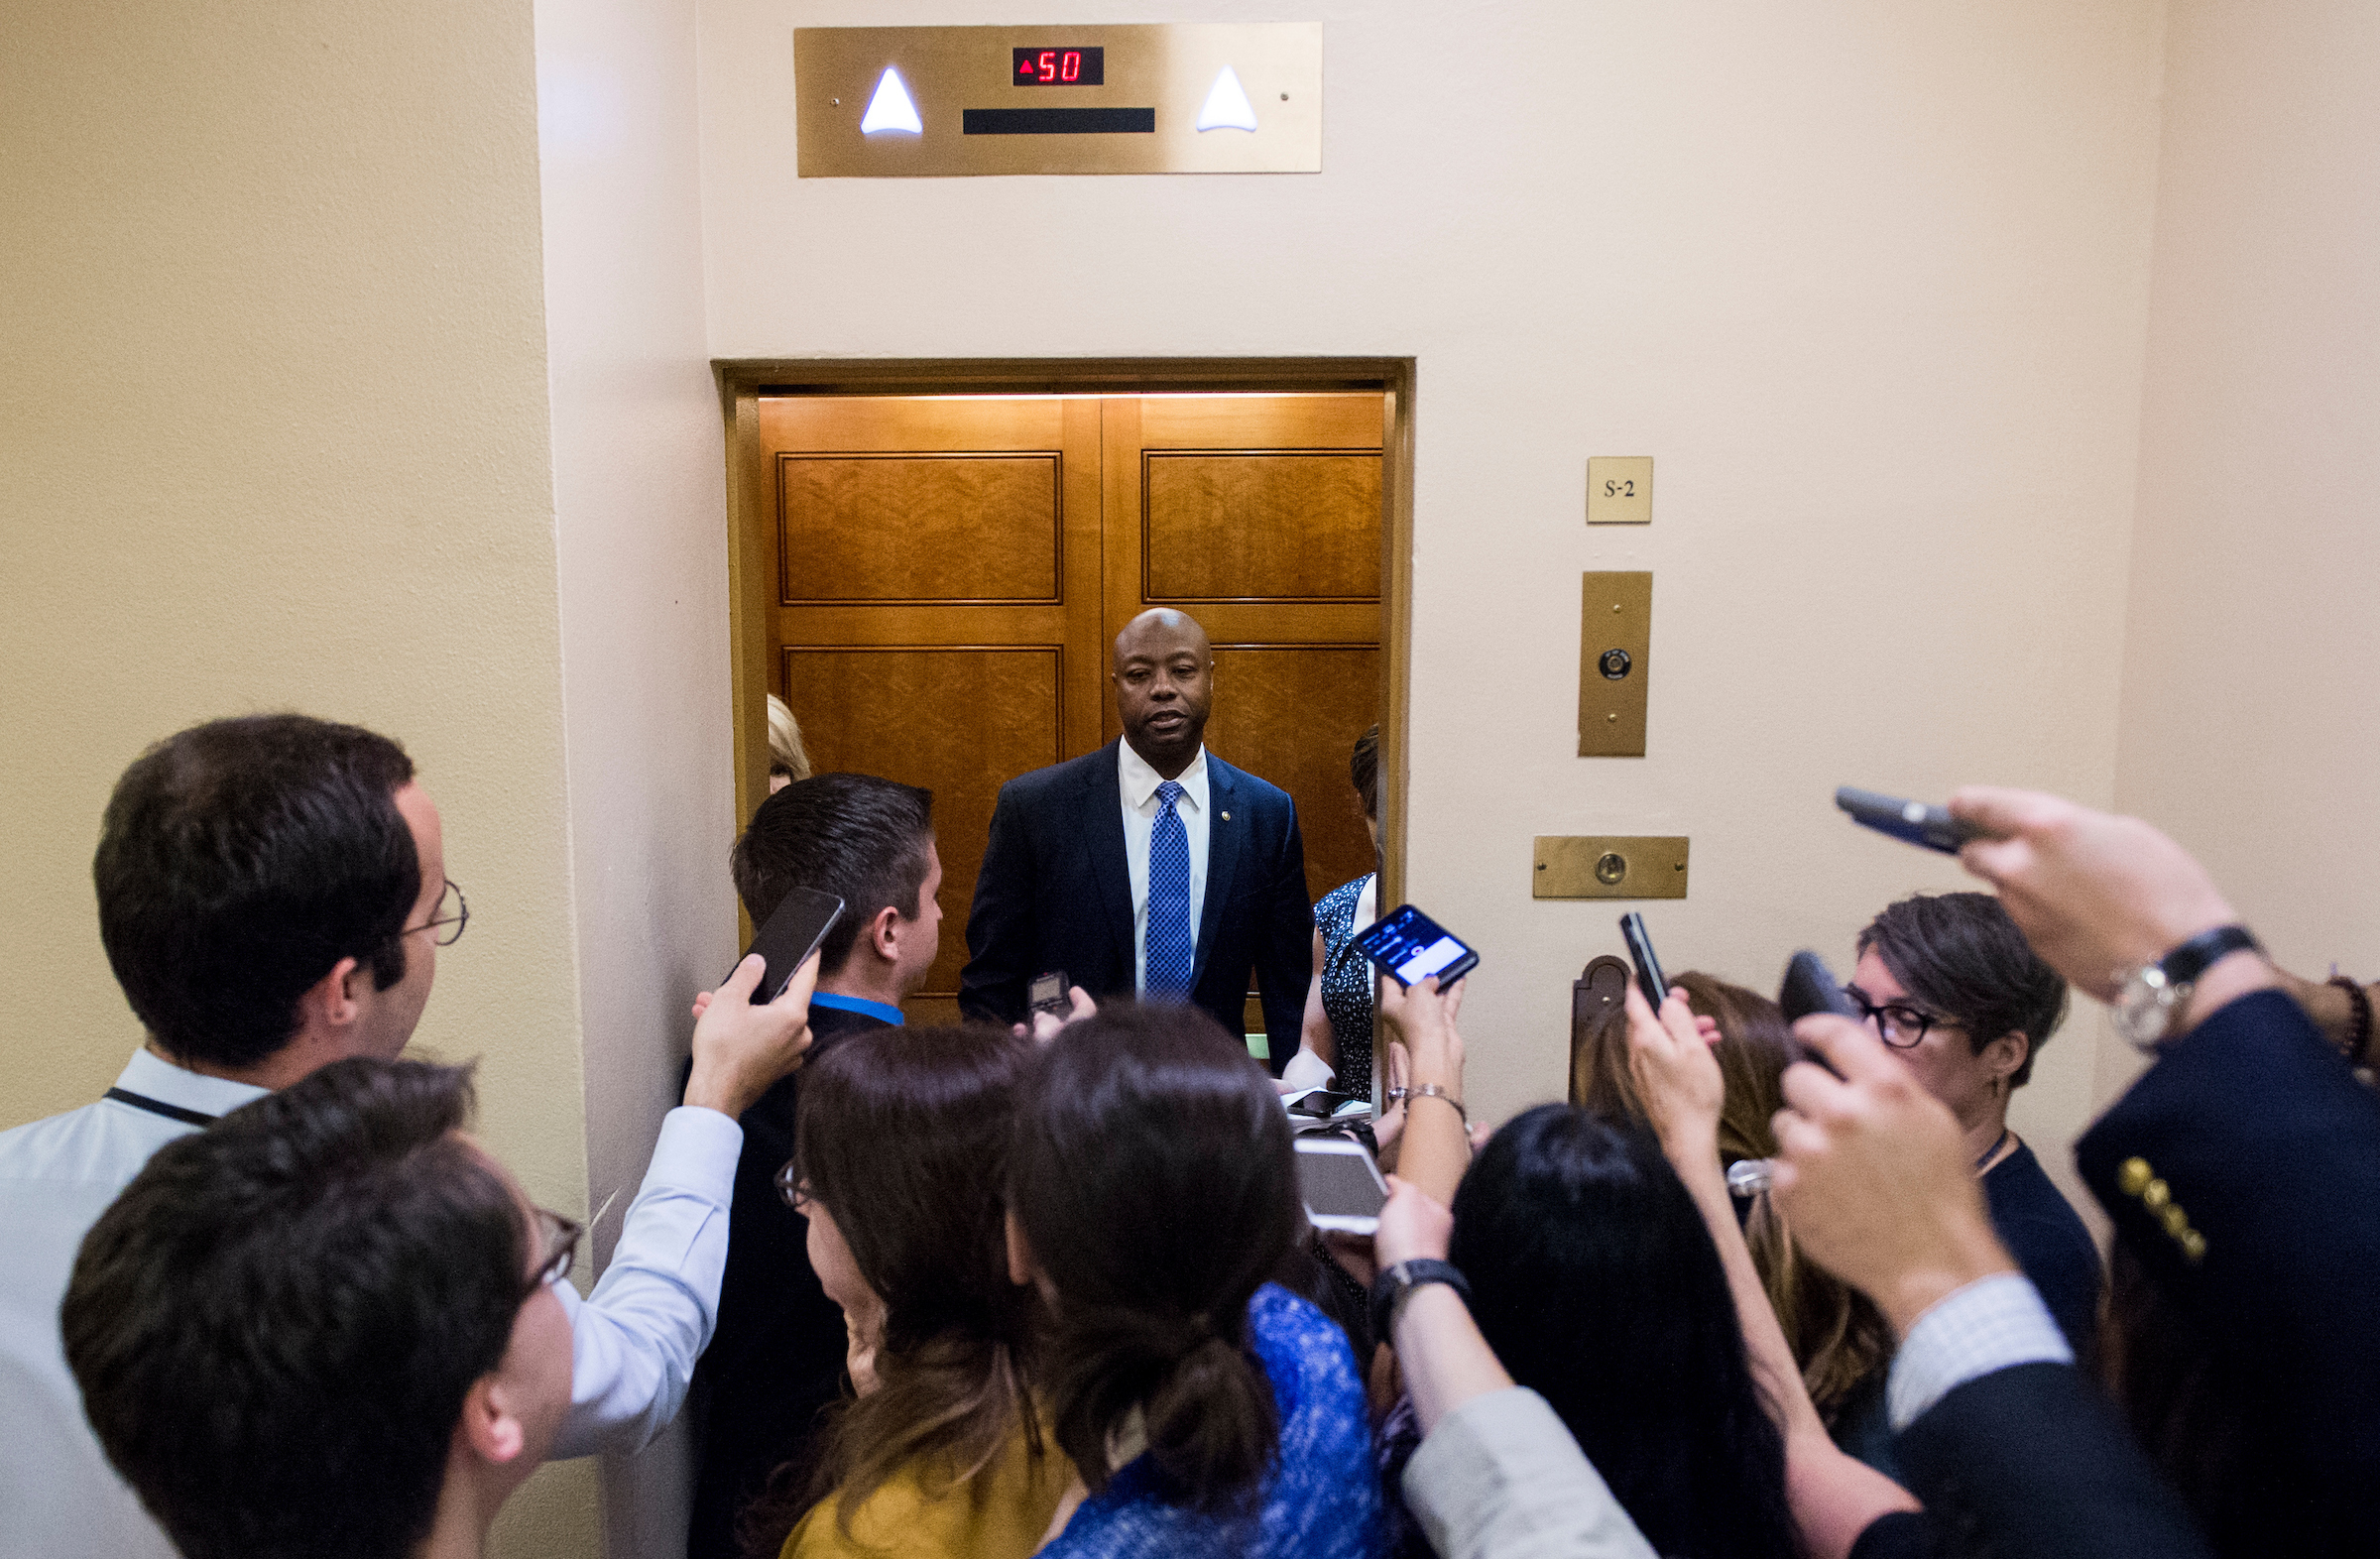 UNITED STATES - MAY 16: Reporters ask Sen. Tim Scott, R-S.C., questions as he arrives in the Capitol for the Senate Republicans' policy lunch on Tuesday, May 16, 2017. (Photo By Bill Clark/CQ Roll Call)